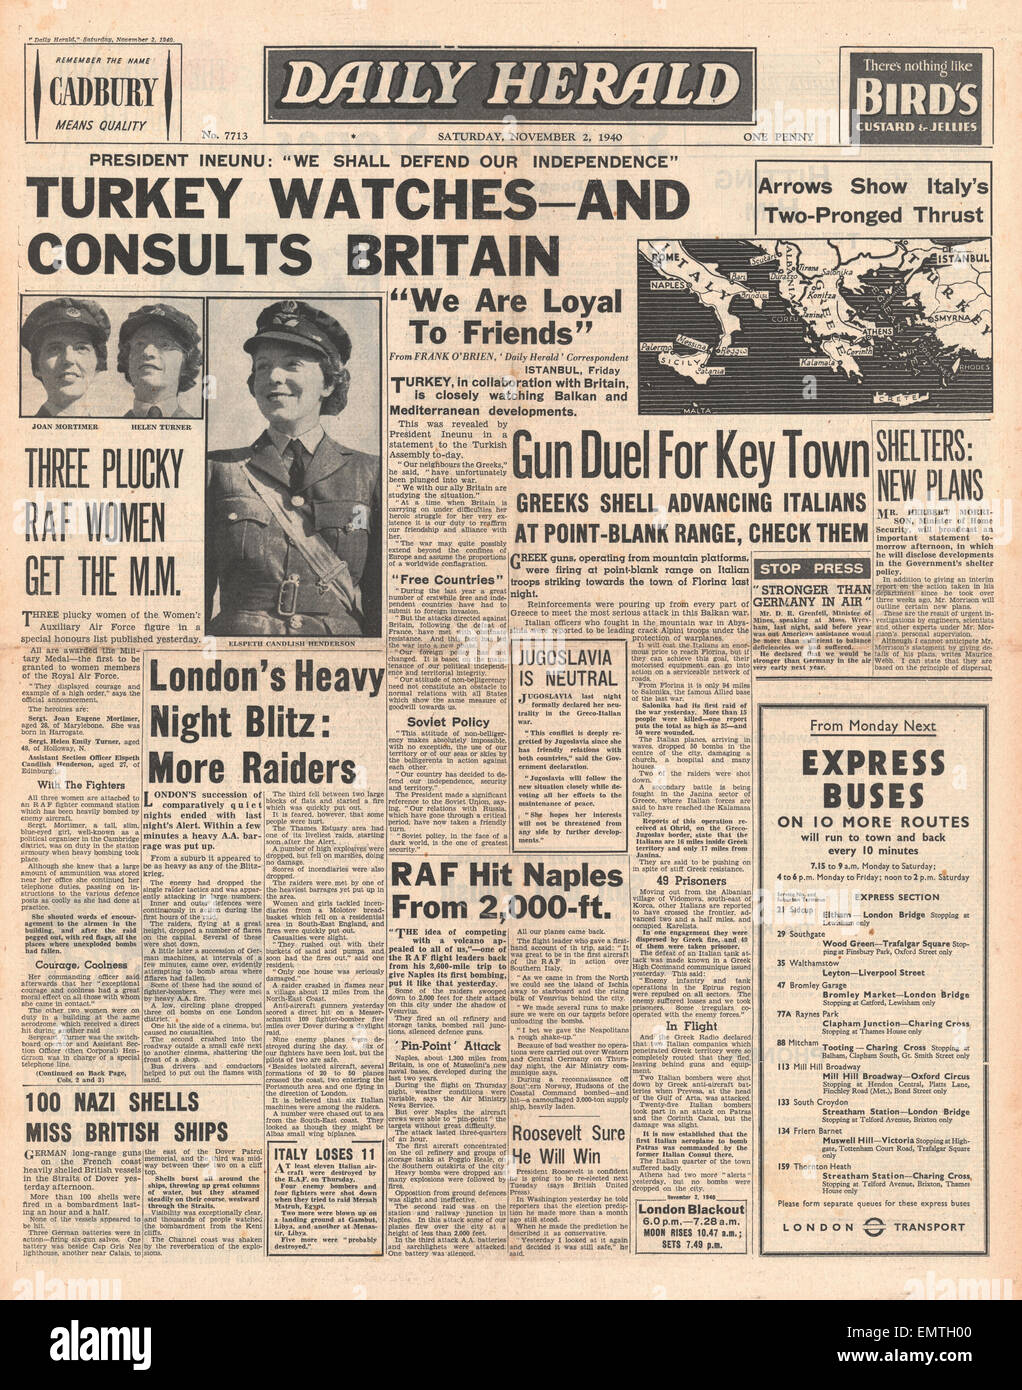 1940 front page Daily Herald Turkey to stay allies of Britian three WAAF women win the Military Medal - Stock Image